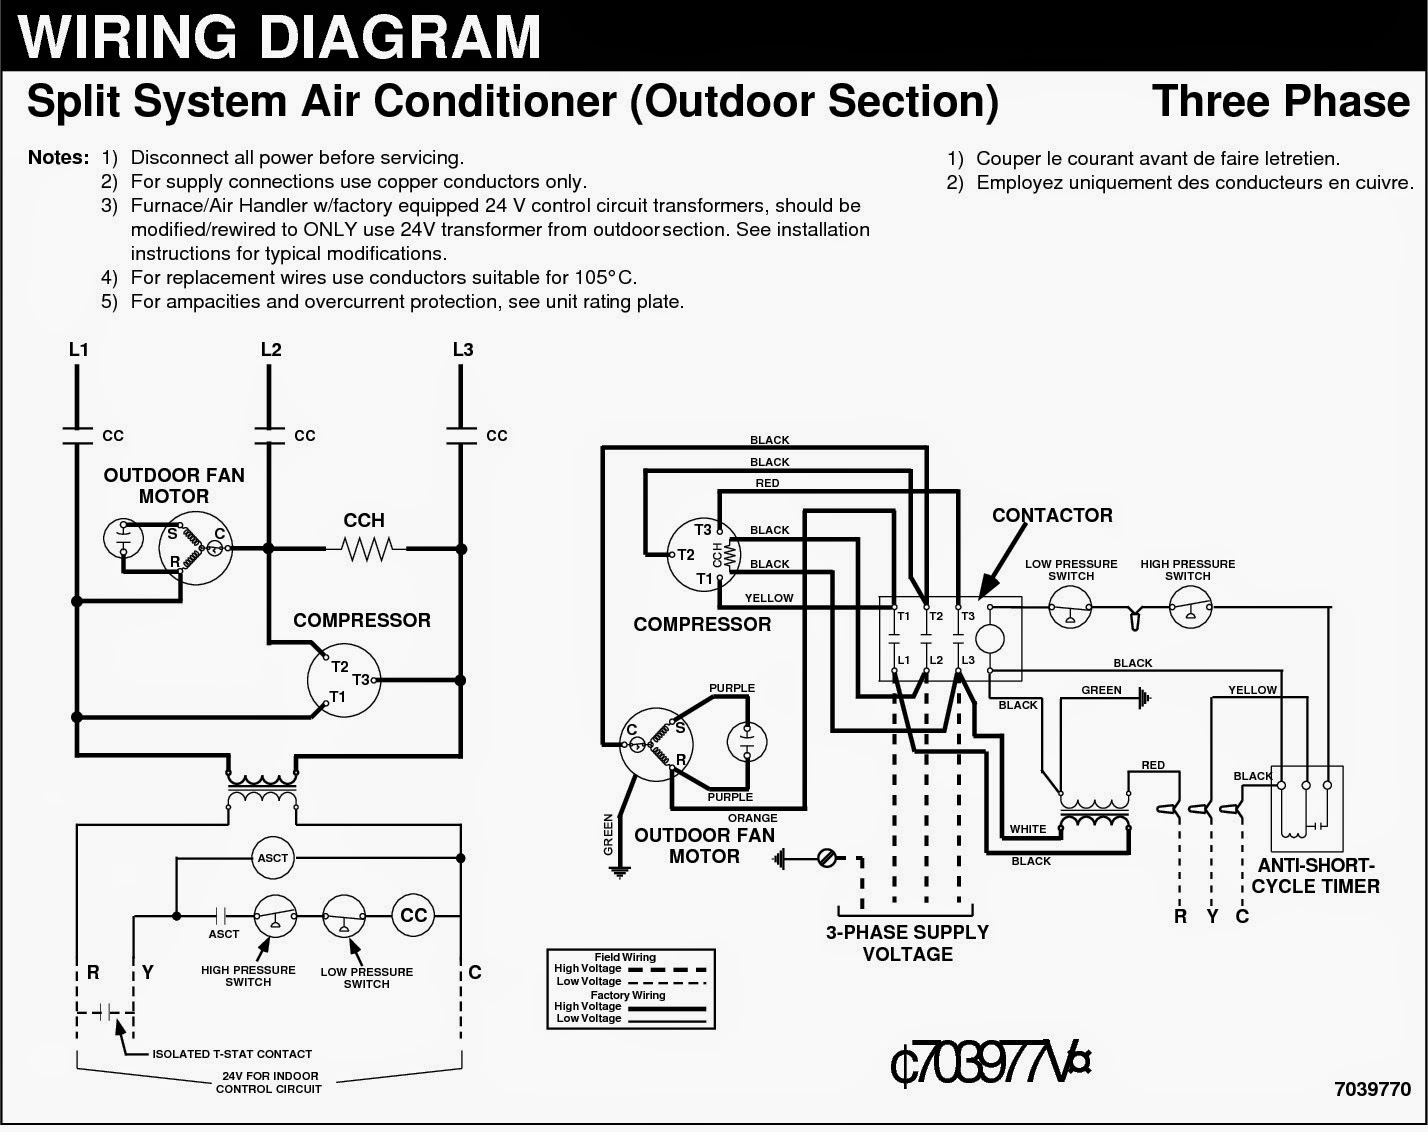 3+phase split system ac wiring diagram home air conditioner wiring diagram wiring diagram for split system air conditioner at couponss.co